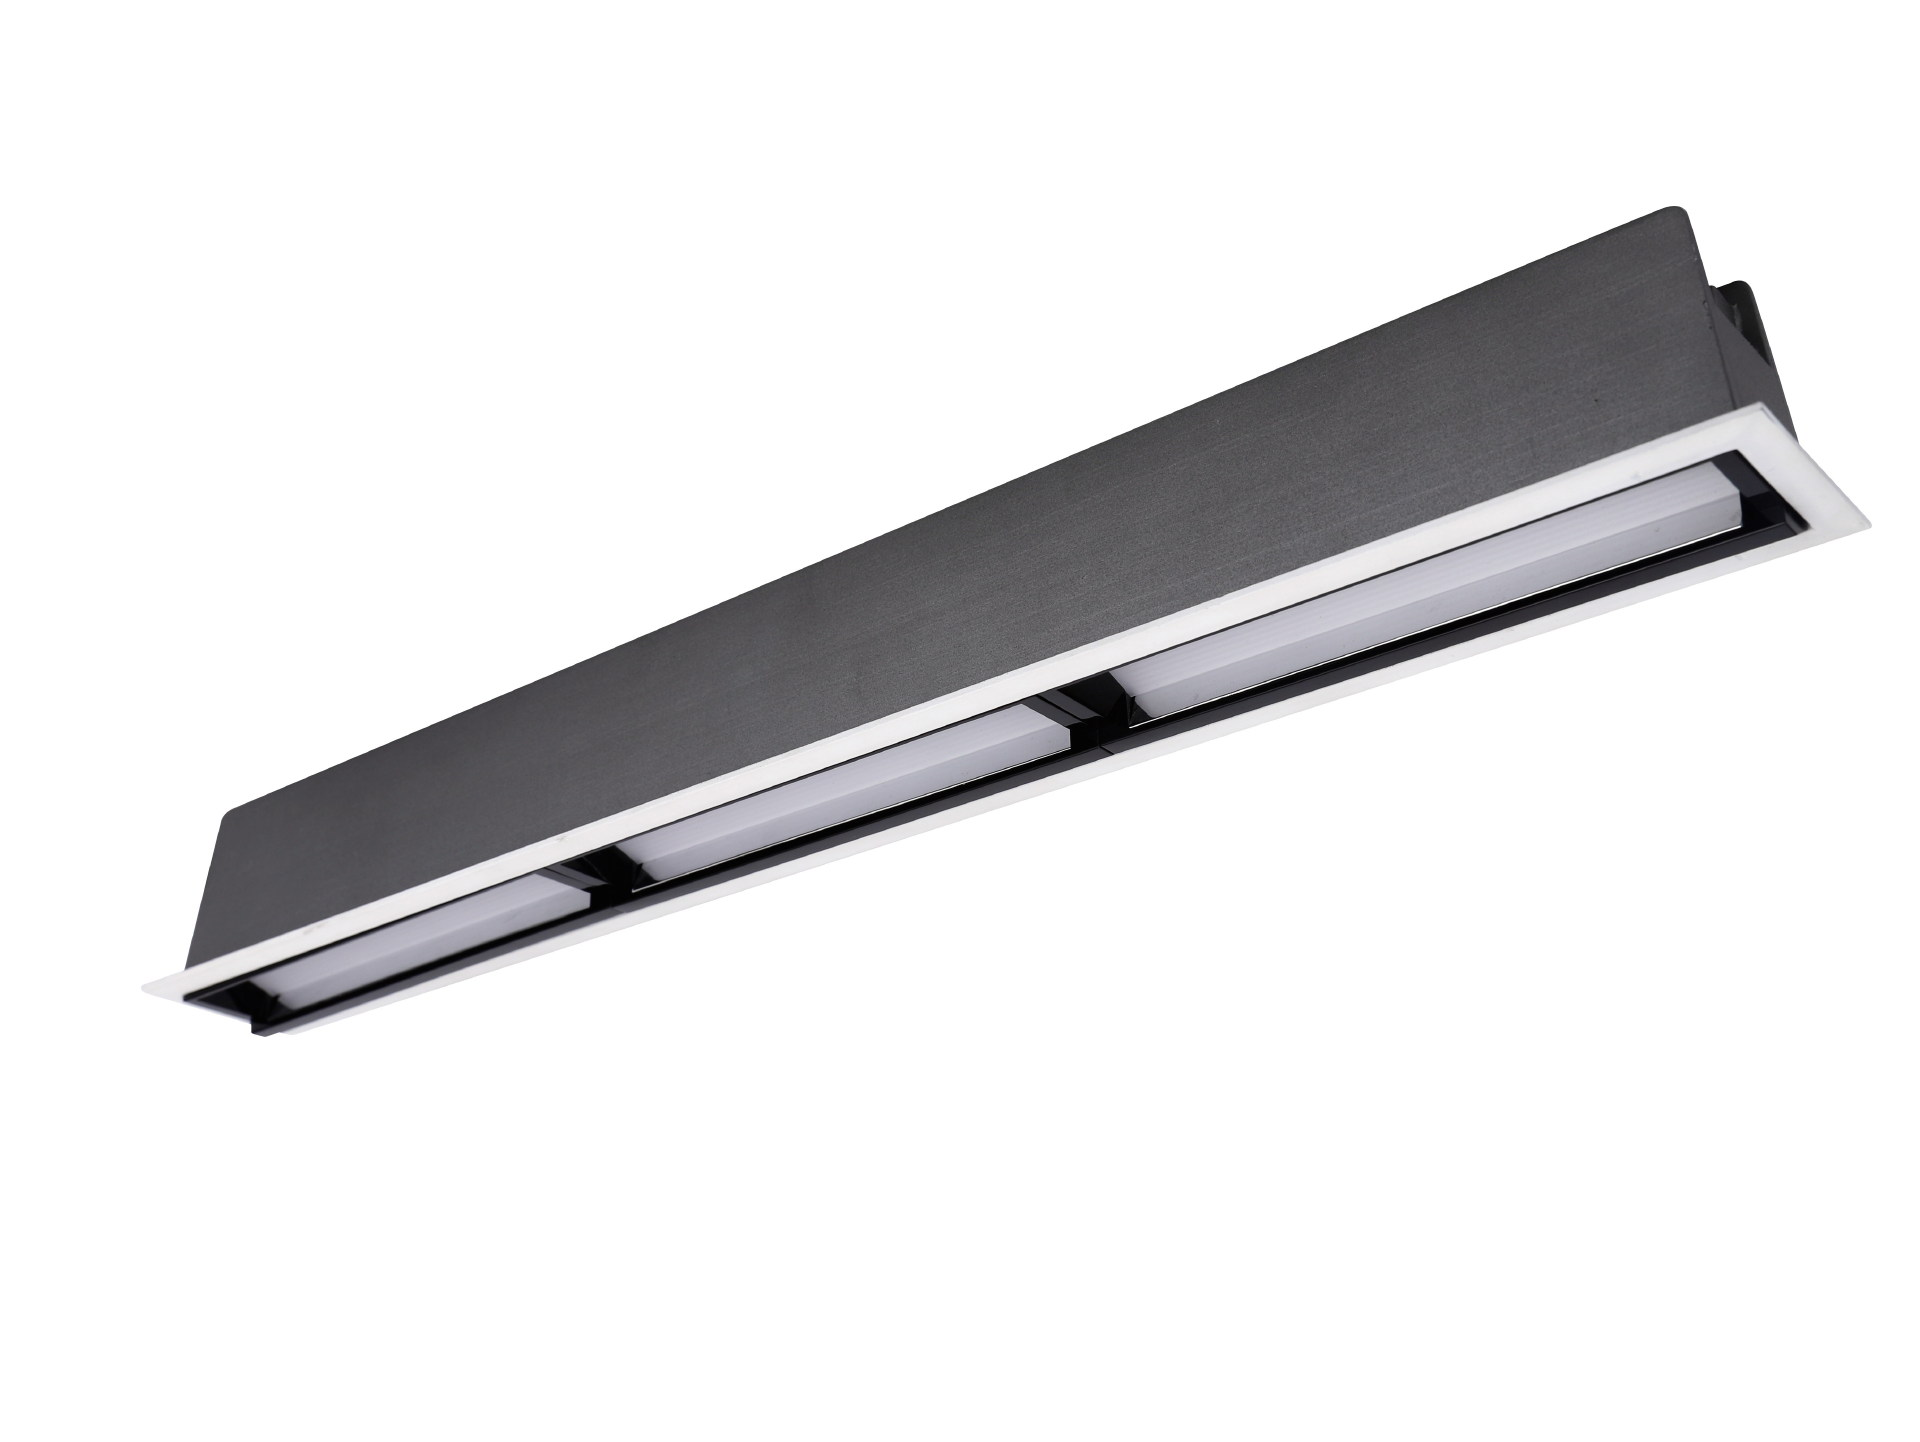 Asymmetric Linear LED Downlight 15x2W